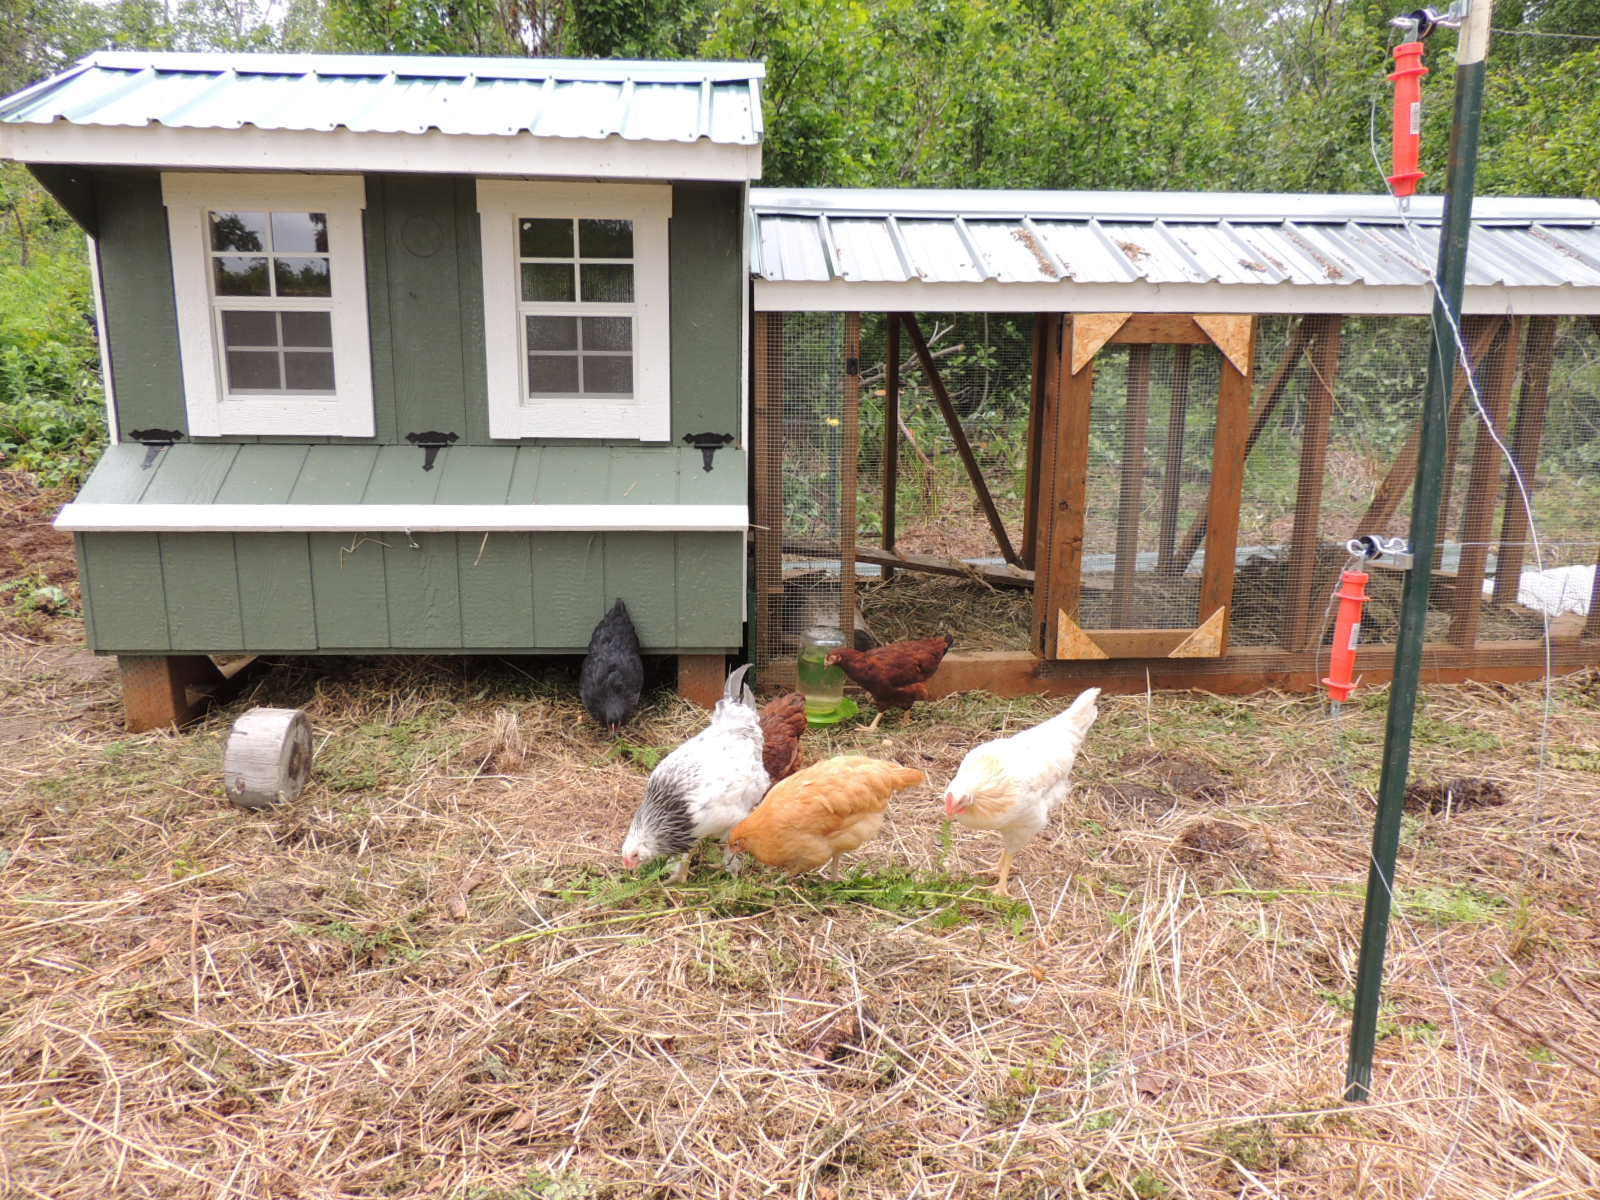 alaska bush life off road off grid raising chickens in alaska